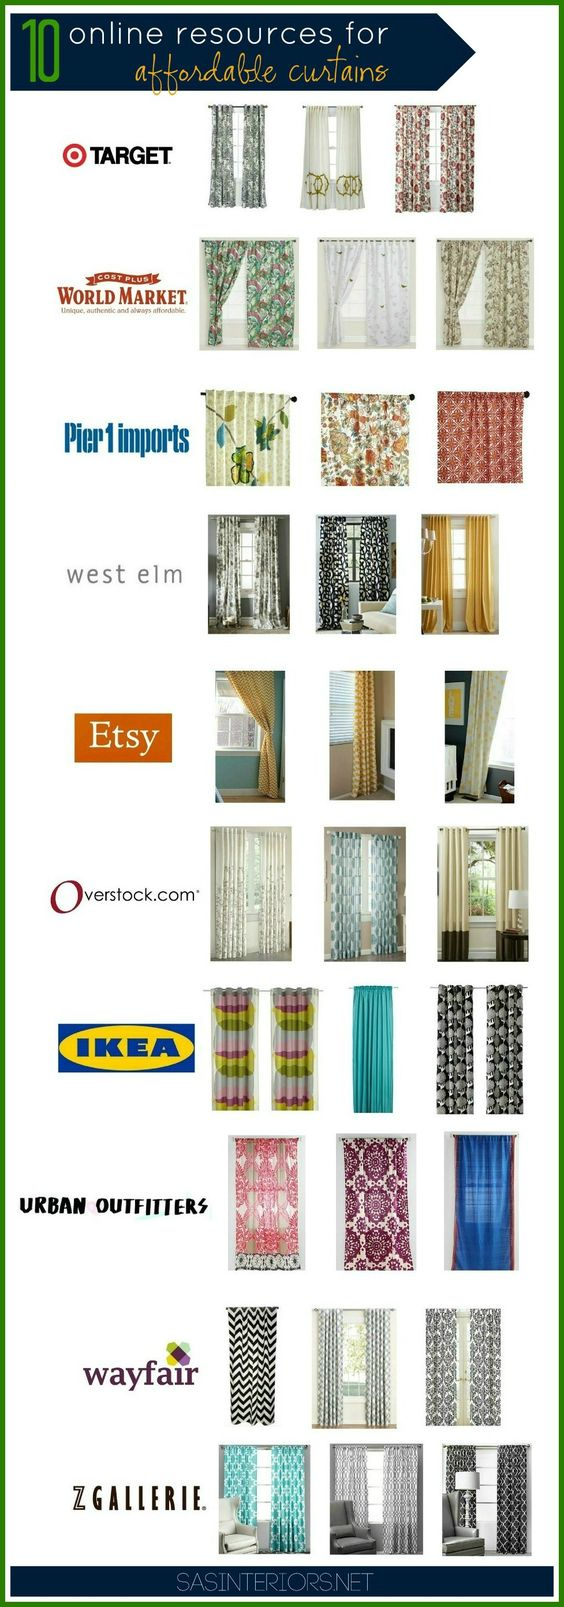 Great Resource for finding affordable curtains online @Jenna_Burger, sasinteriors.net